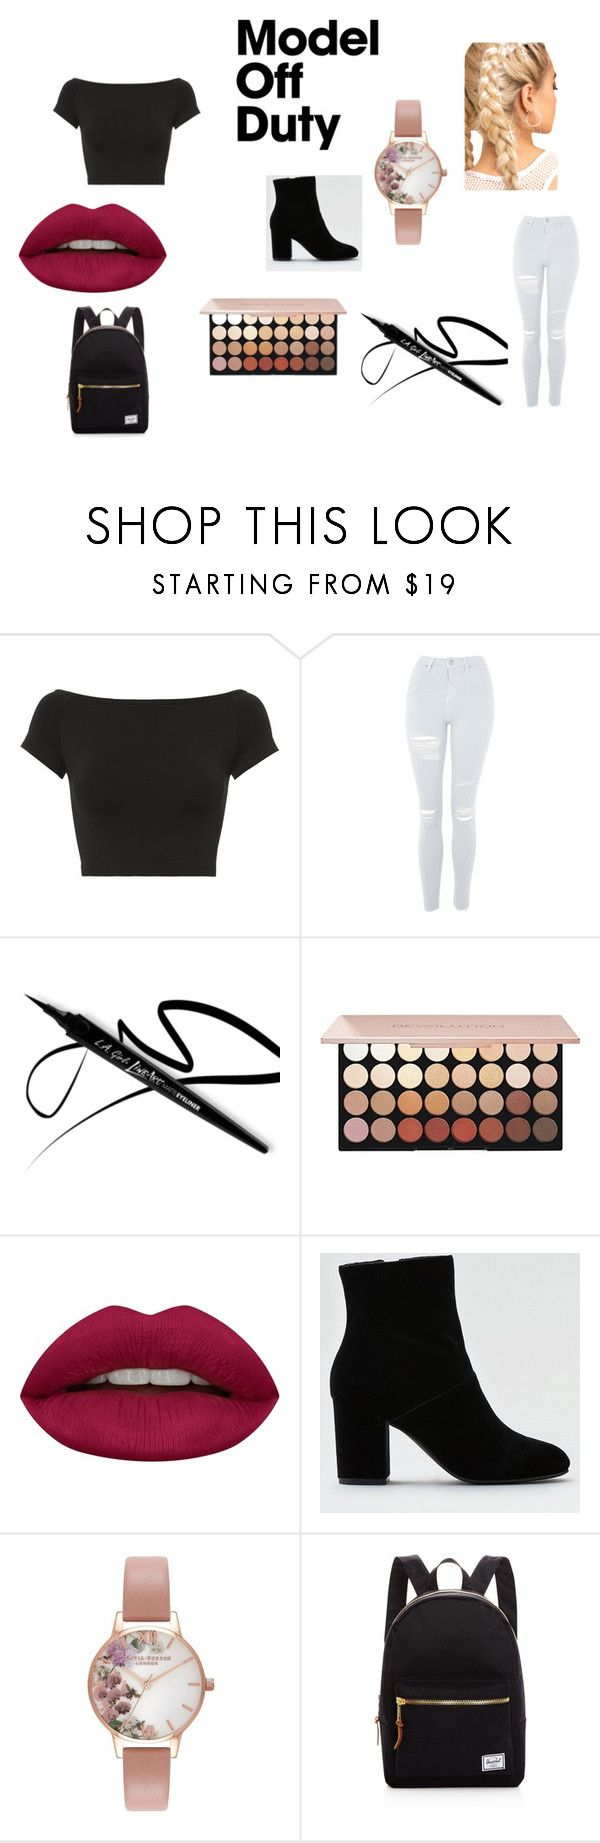 """""""Model Off Duty"""" by harleyquinn-dcc ❤ liked on Polyvore featuring Helmut Lang, Topshop, Huda Beauty, American Eagle Outfitters, Olivia Burton, Herschel Supply Co. and modeloffduty"""